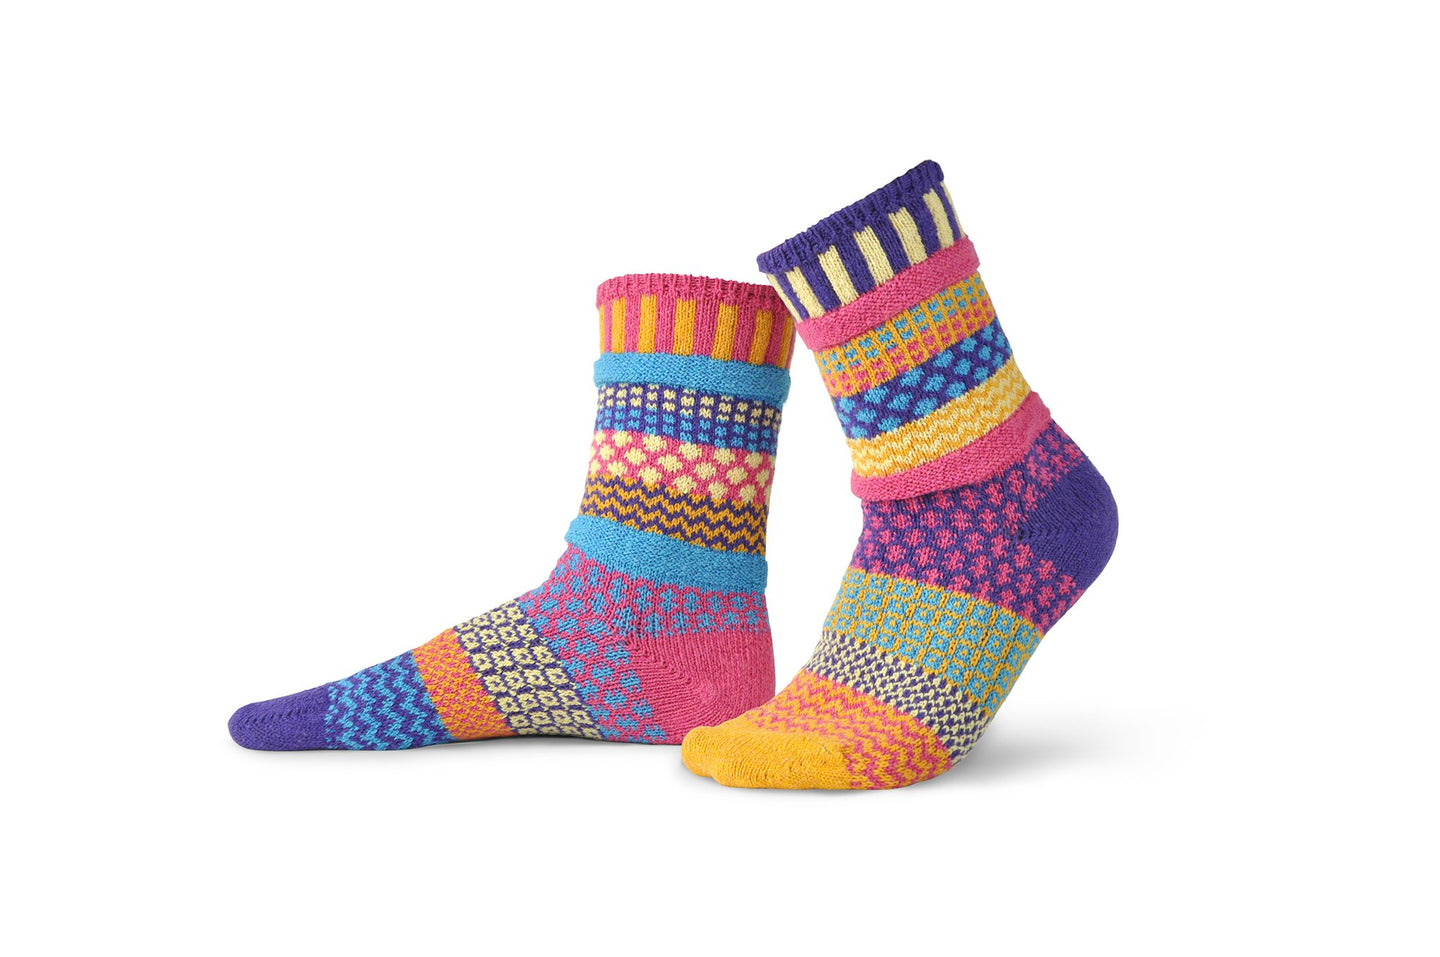 Solmate socks made in the USA from recycled cotton, Sunny in pink, orange, aqua, purple and lemon